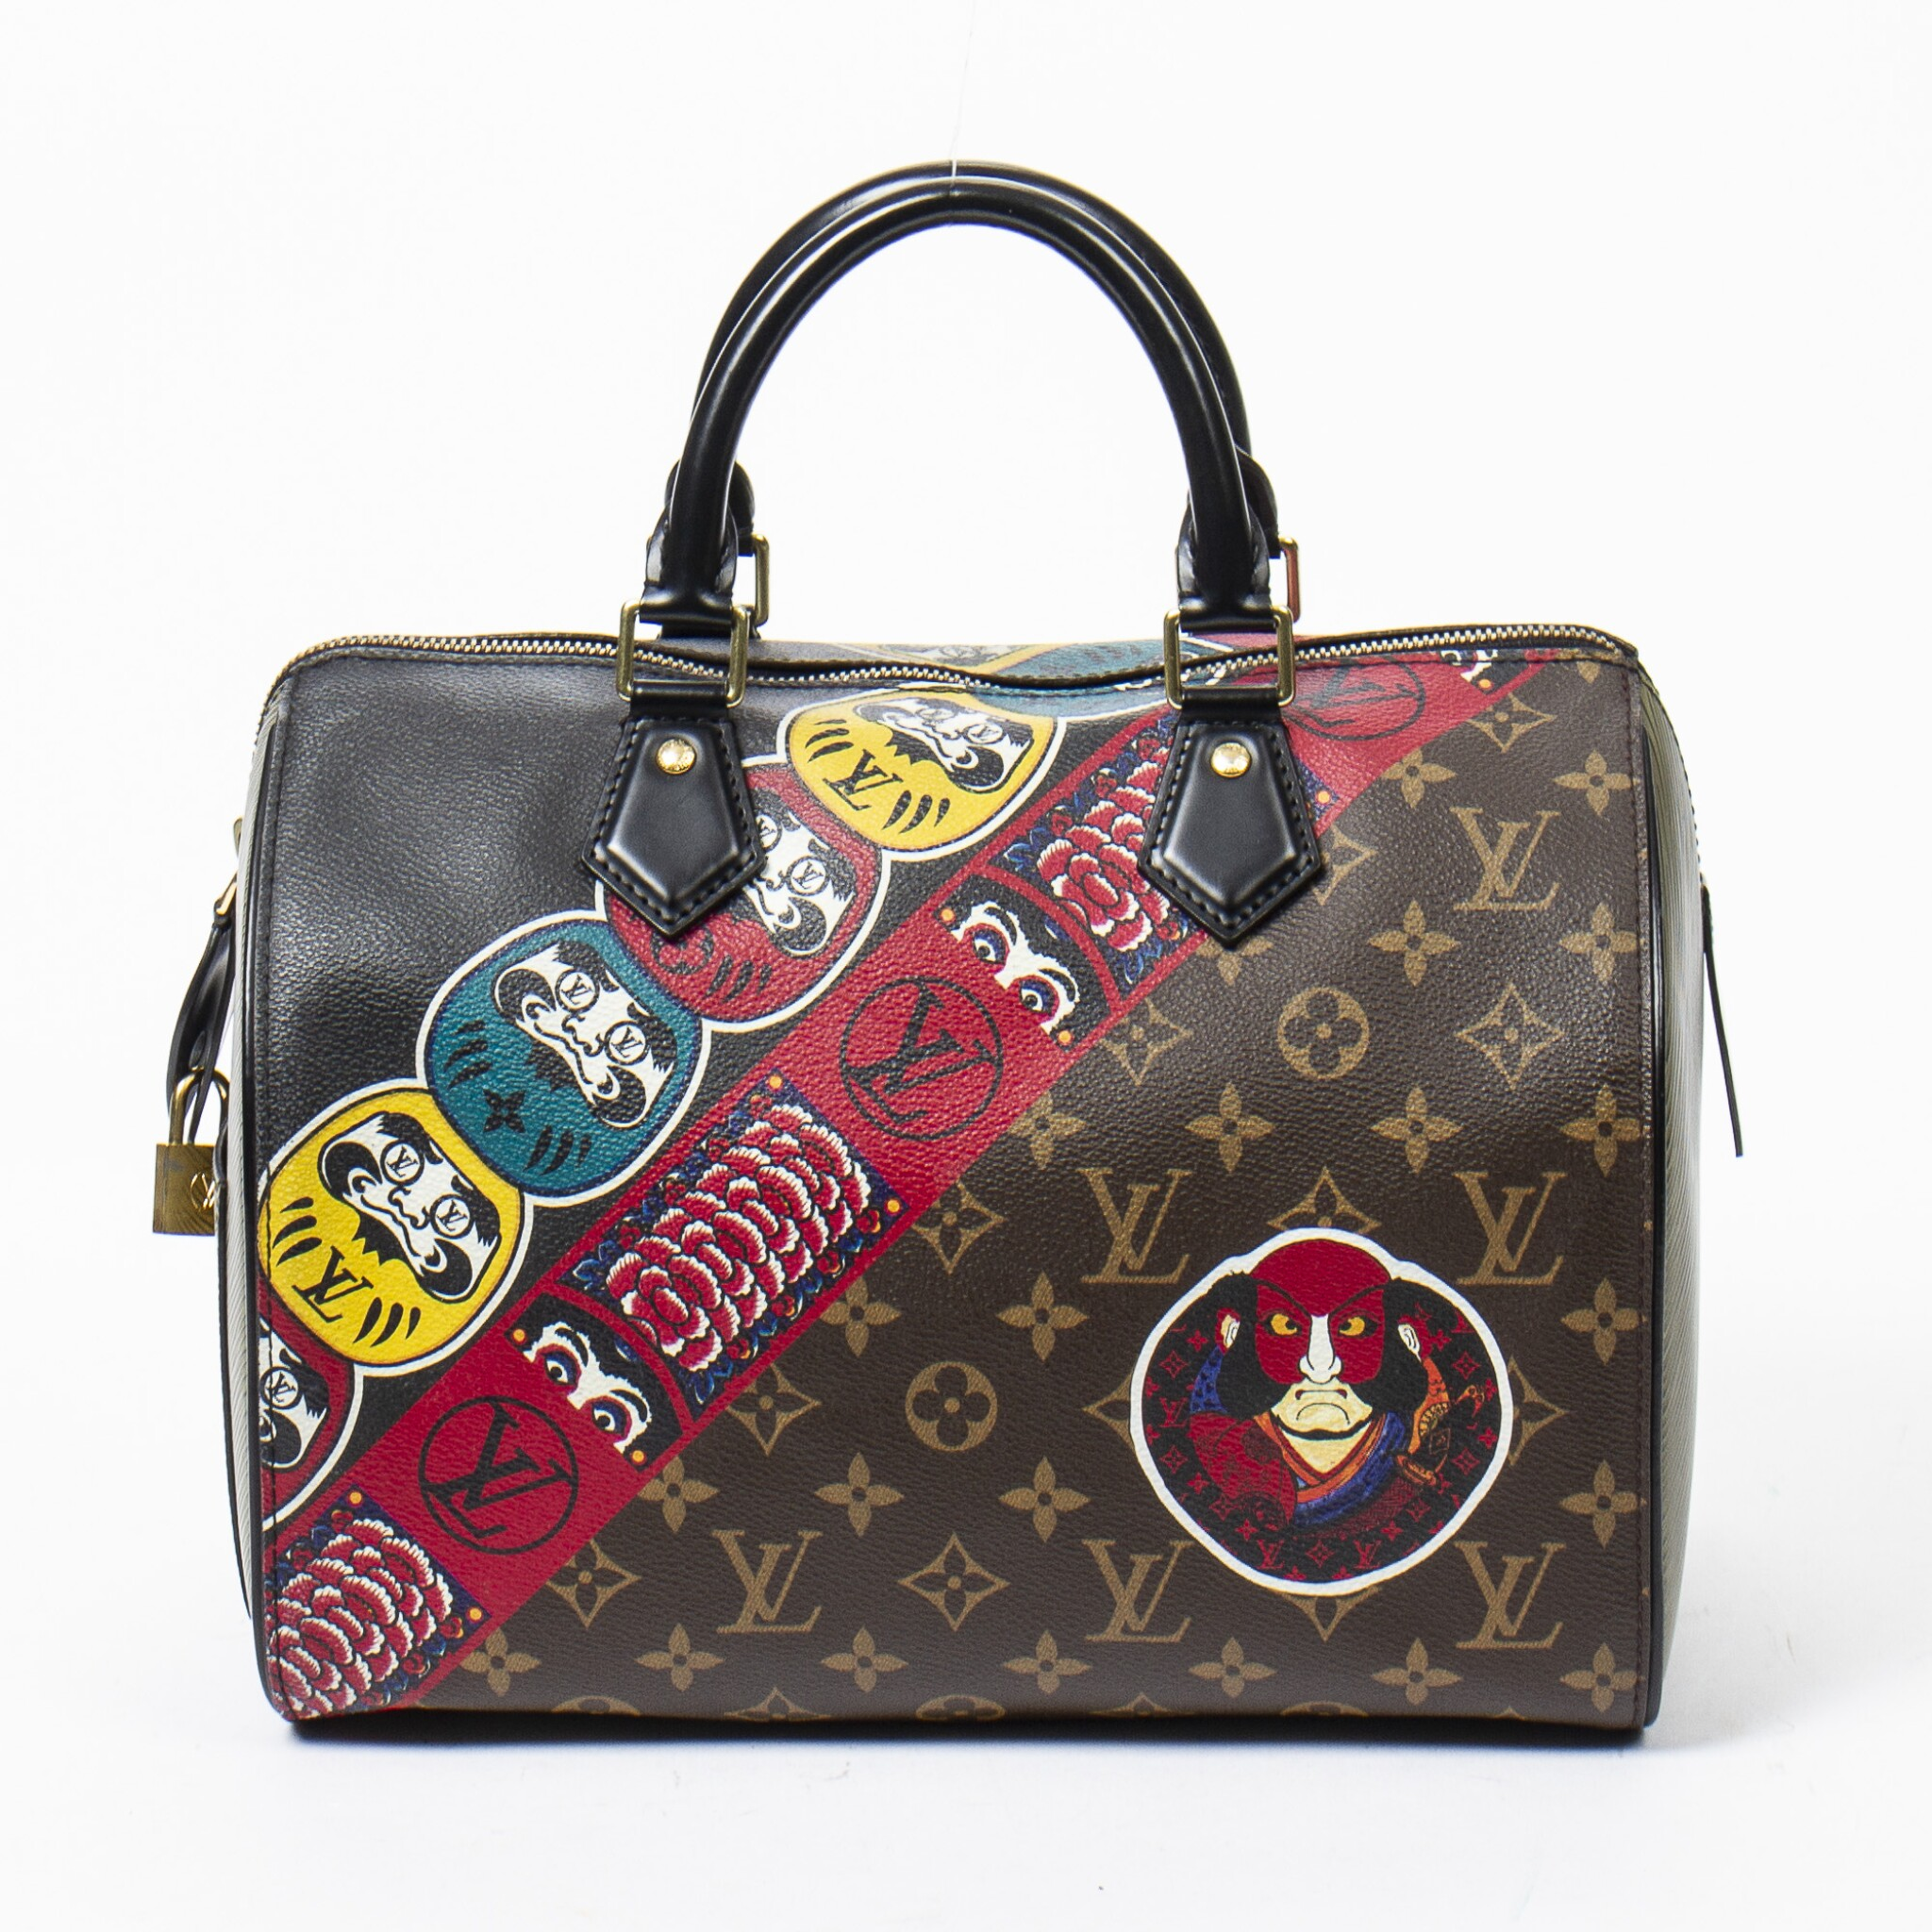 """View full screen - View 1 of Lot 7. Brown, Black and Khaki Green Kabuki Limited Edition """"Kabuki"""" Speedy 30 in Monogram Canvas with Golden Brass Hardware, 2017."""